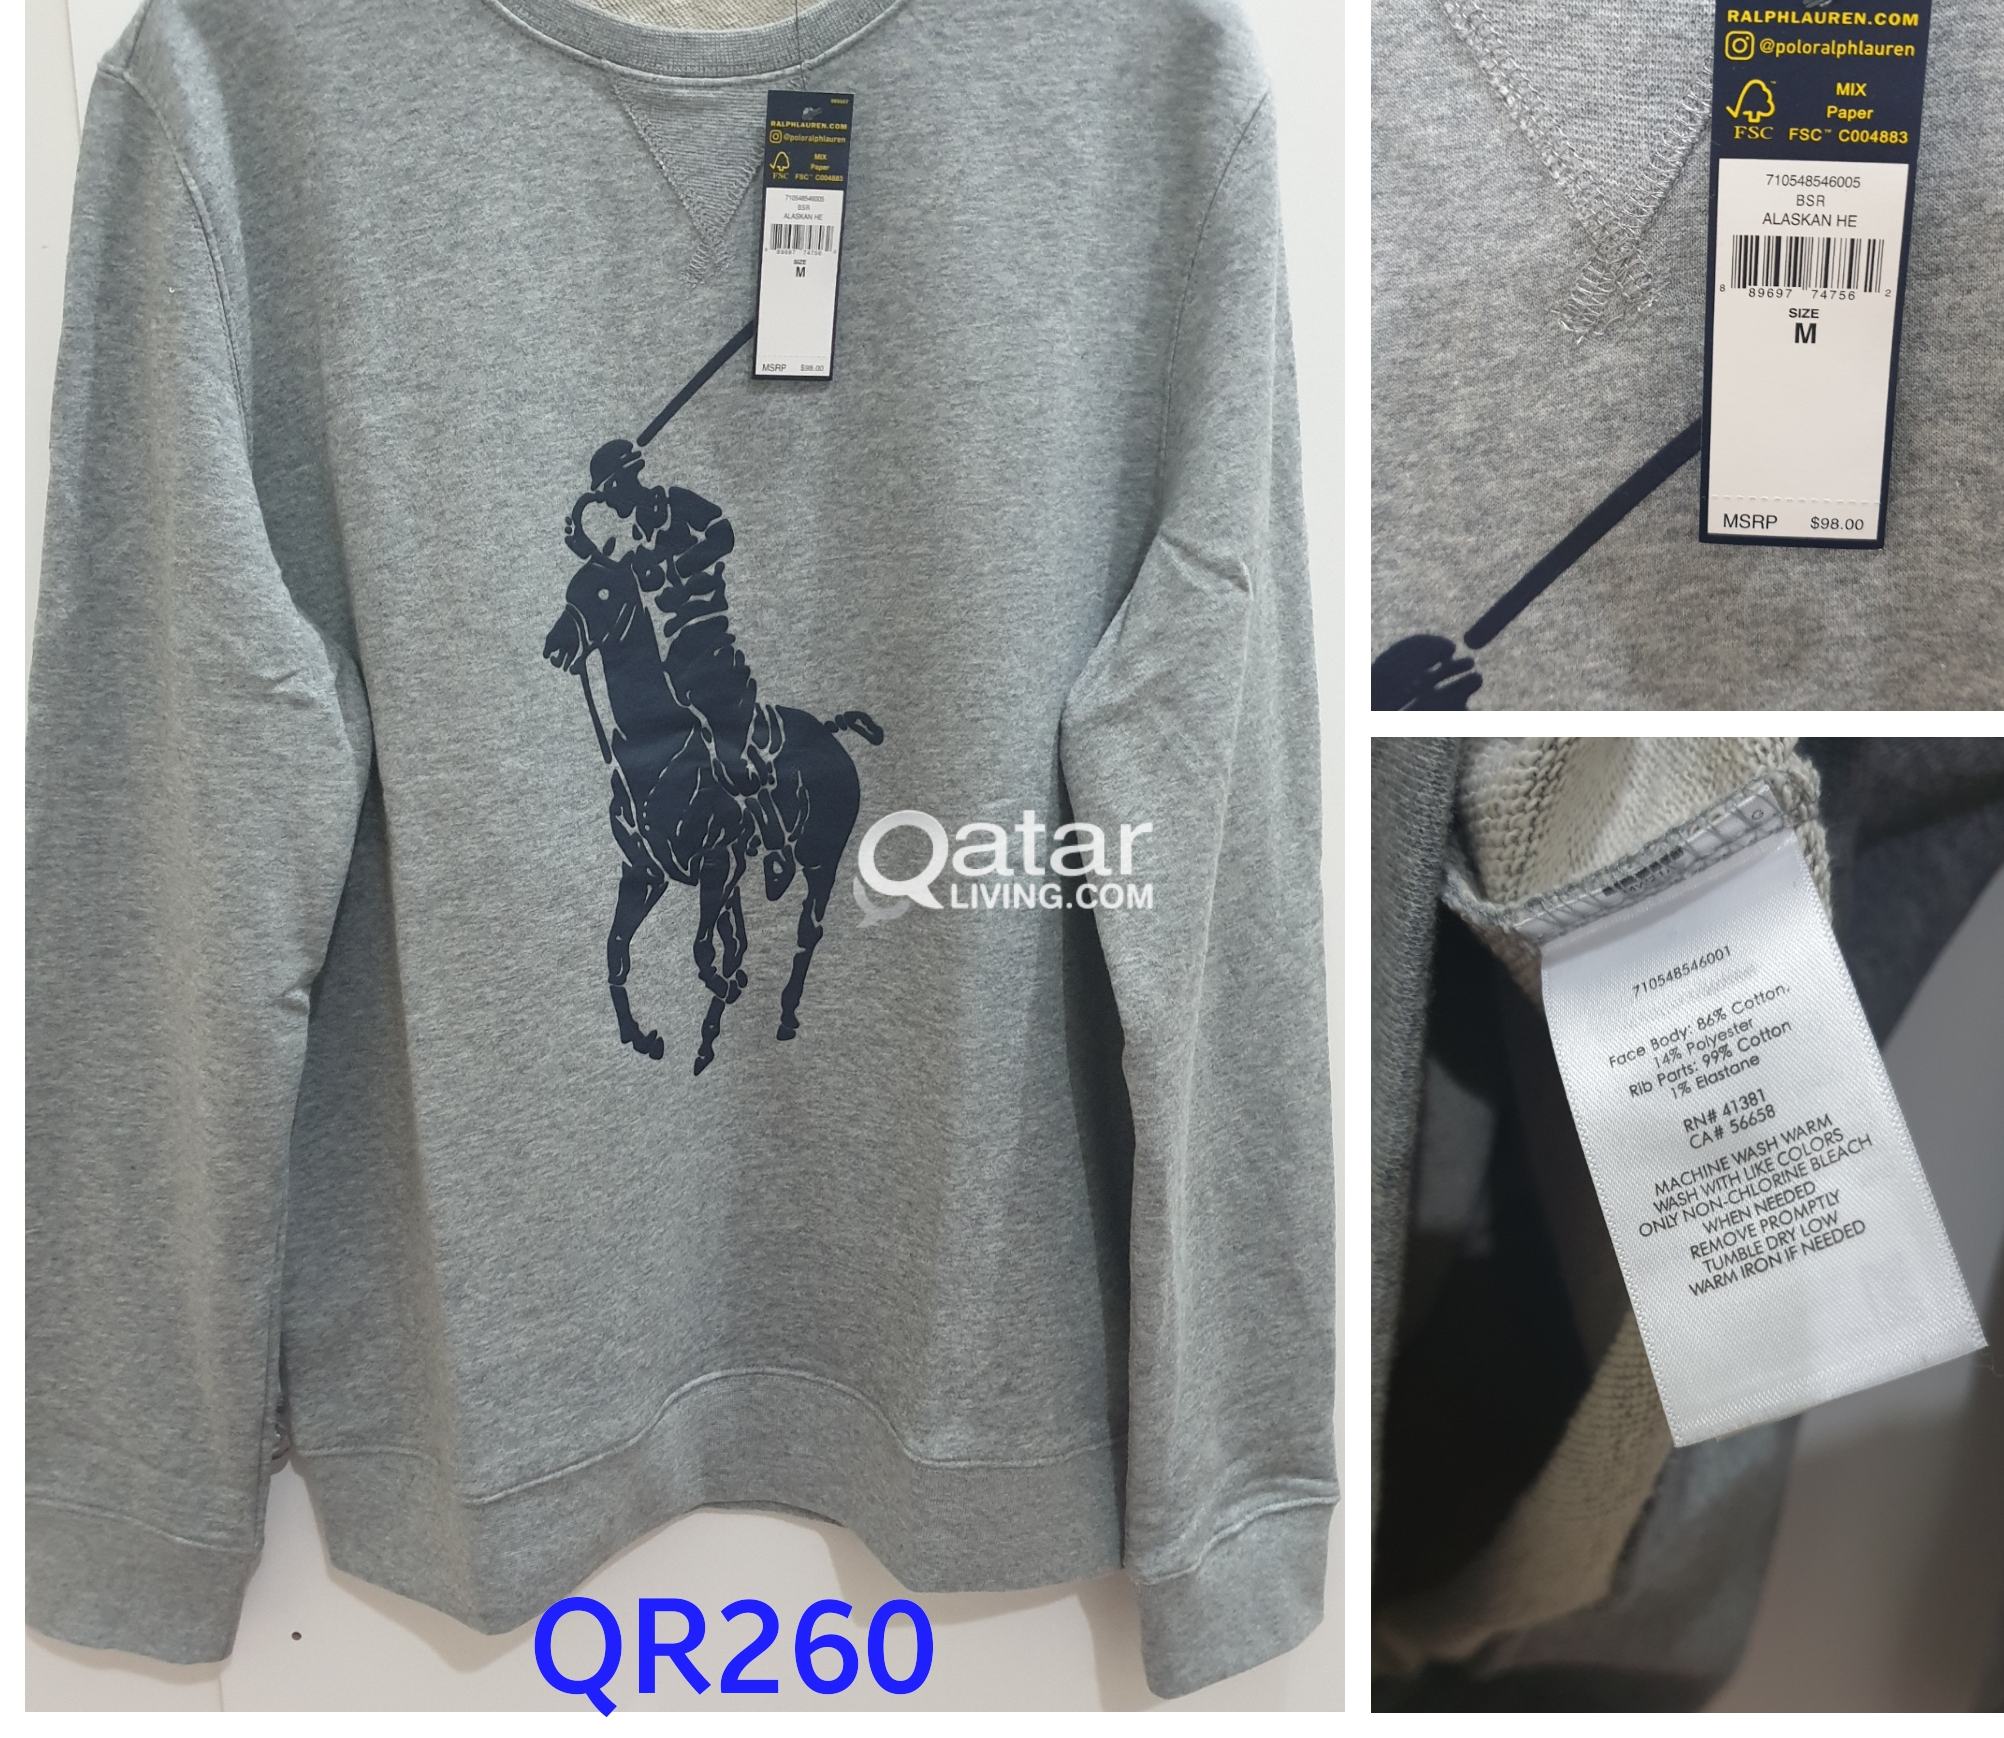 8d5071c7 Original Ralph Lauren POLO Armani Sweaters/jacket | Qatar Living